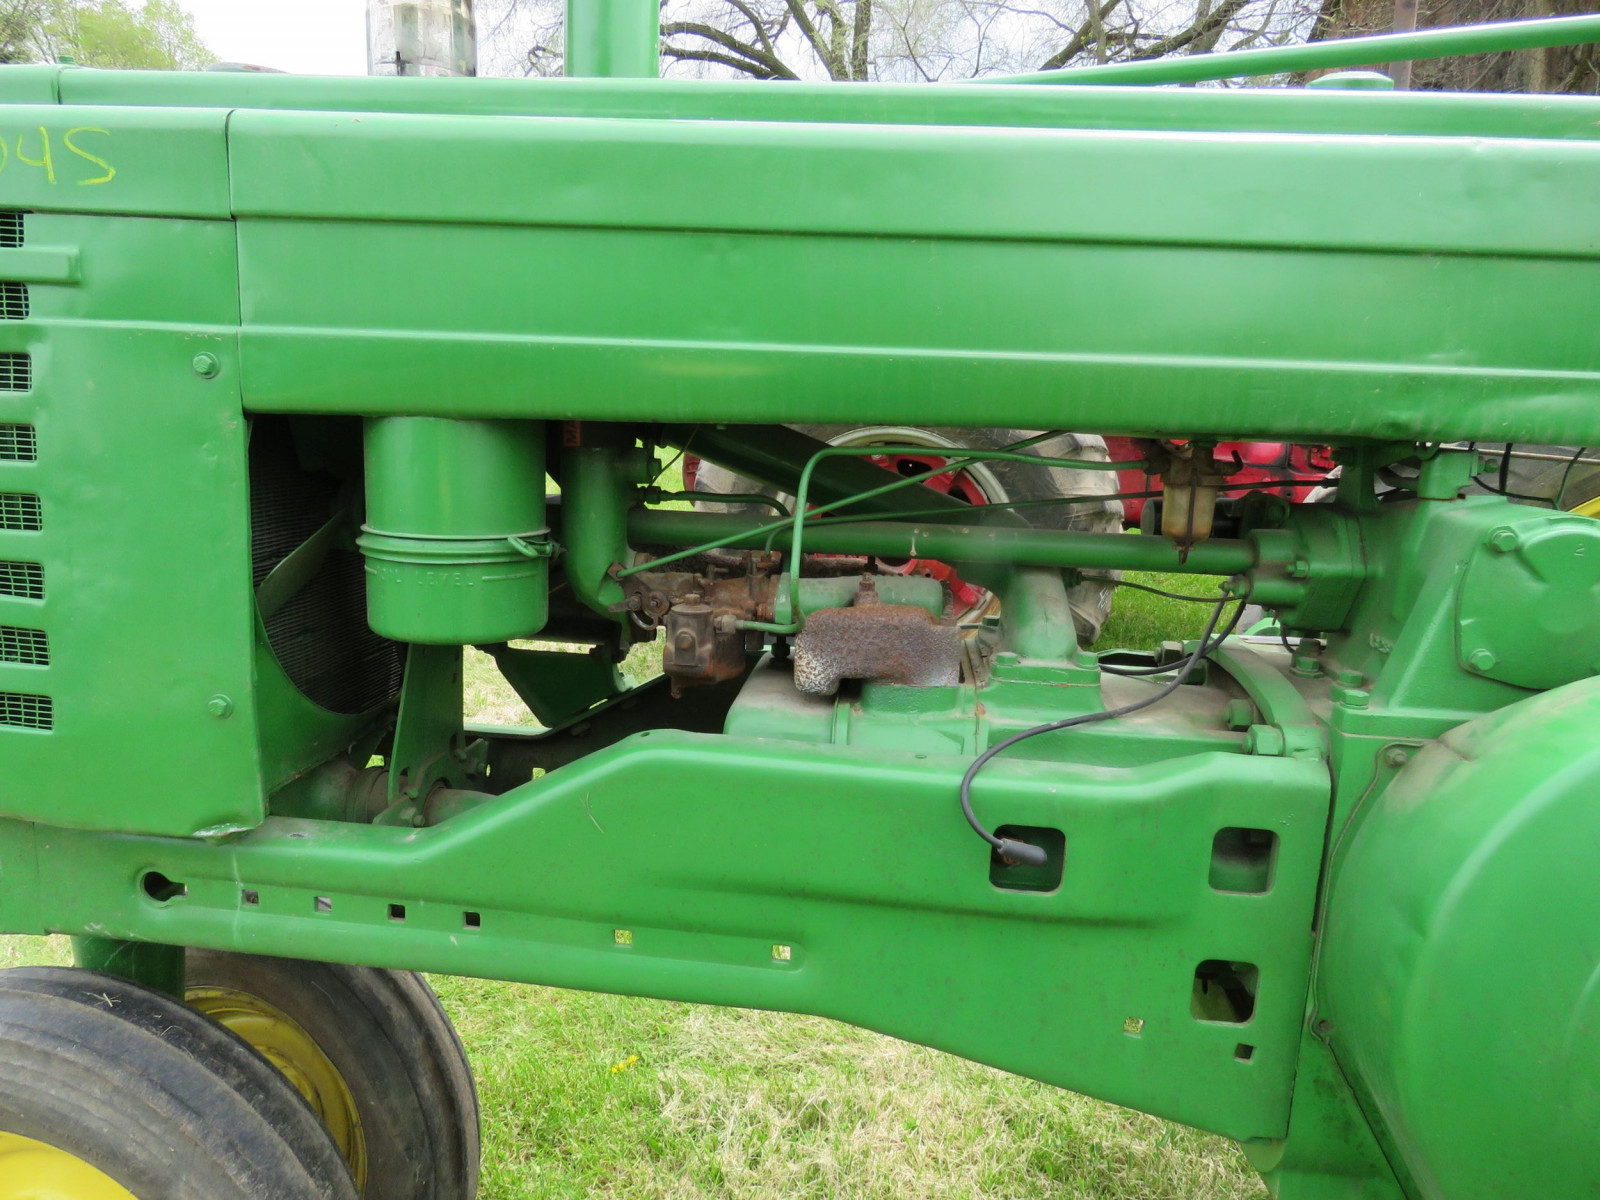 Styled John Deere A Tractor - Image 7